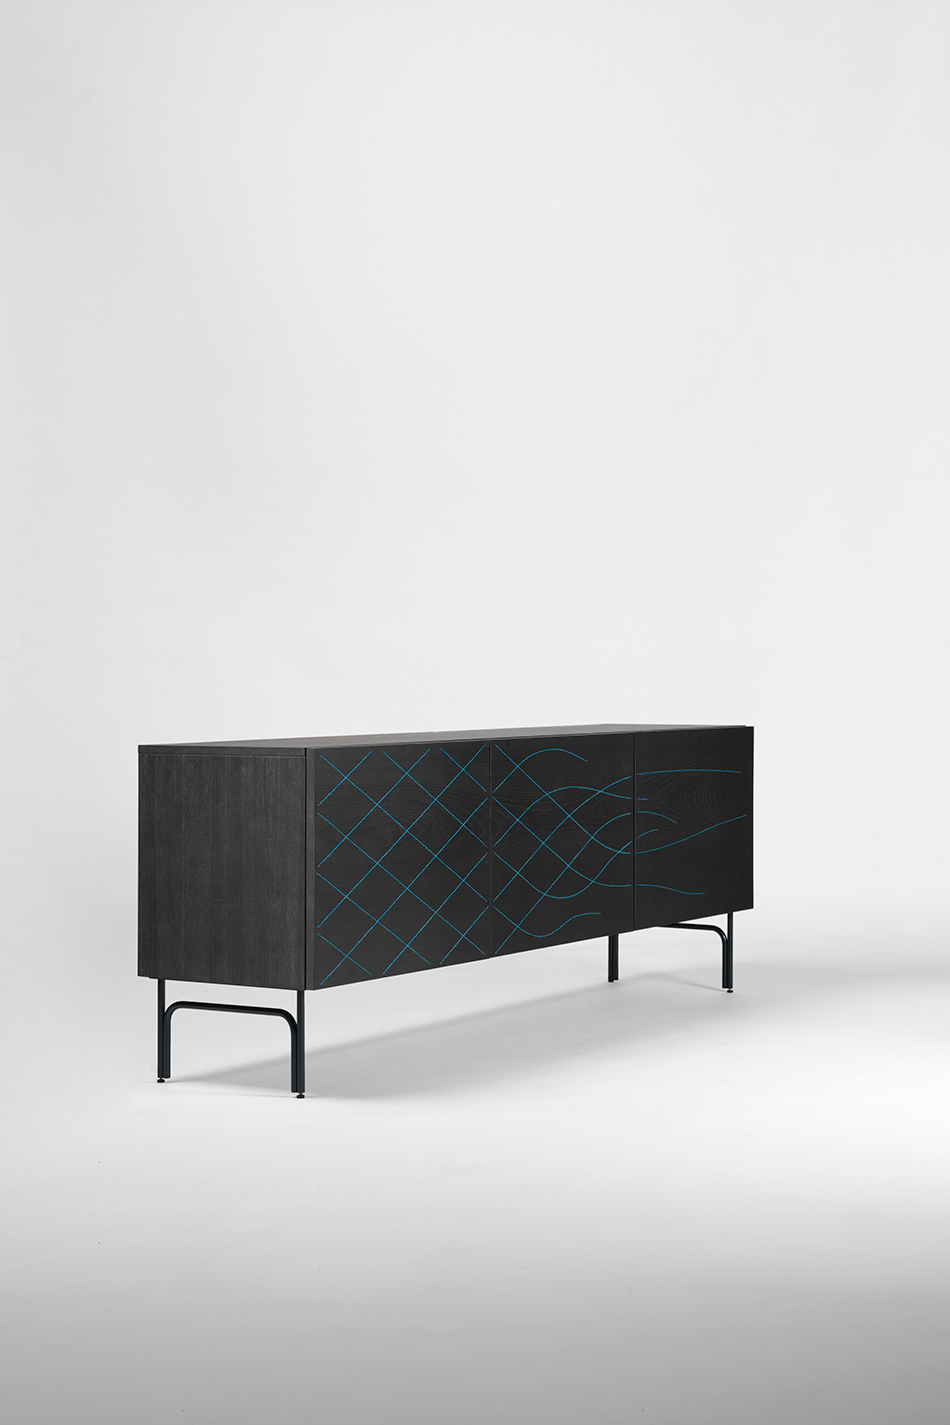 Couture cabinet by Färg & Blanche for BD Barcelona at Salone del Mobile 2017   Yellowtrace